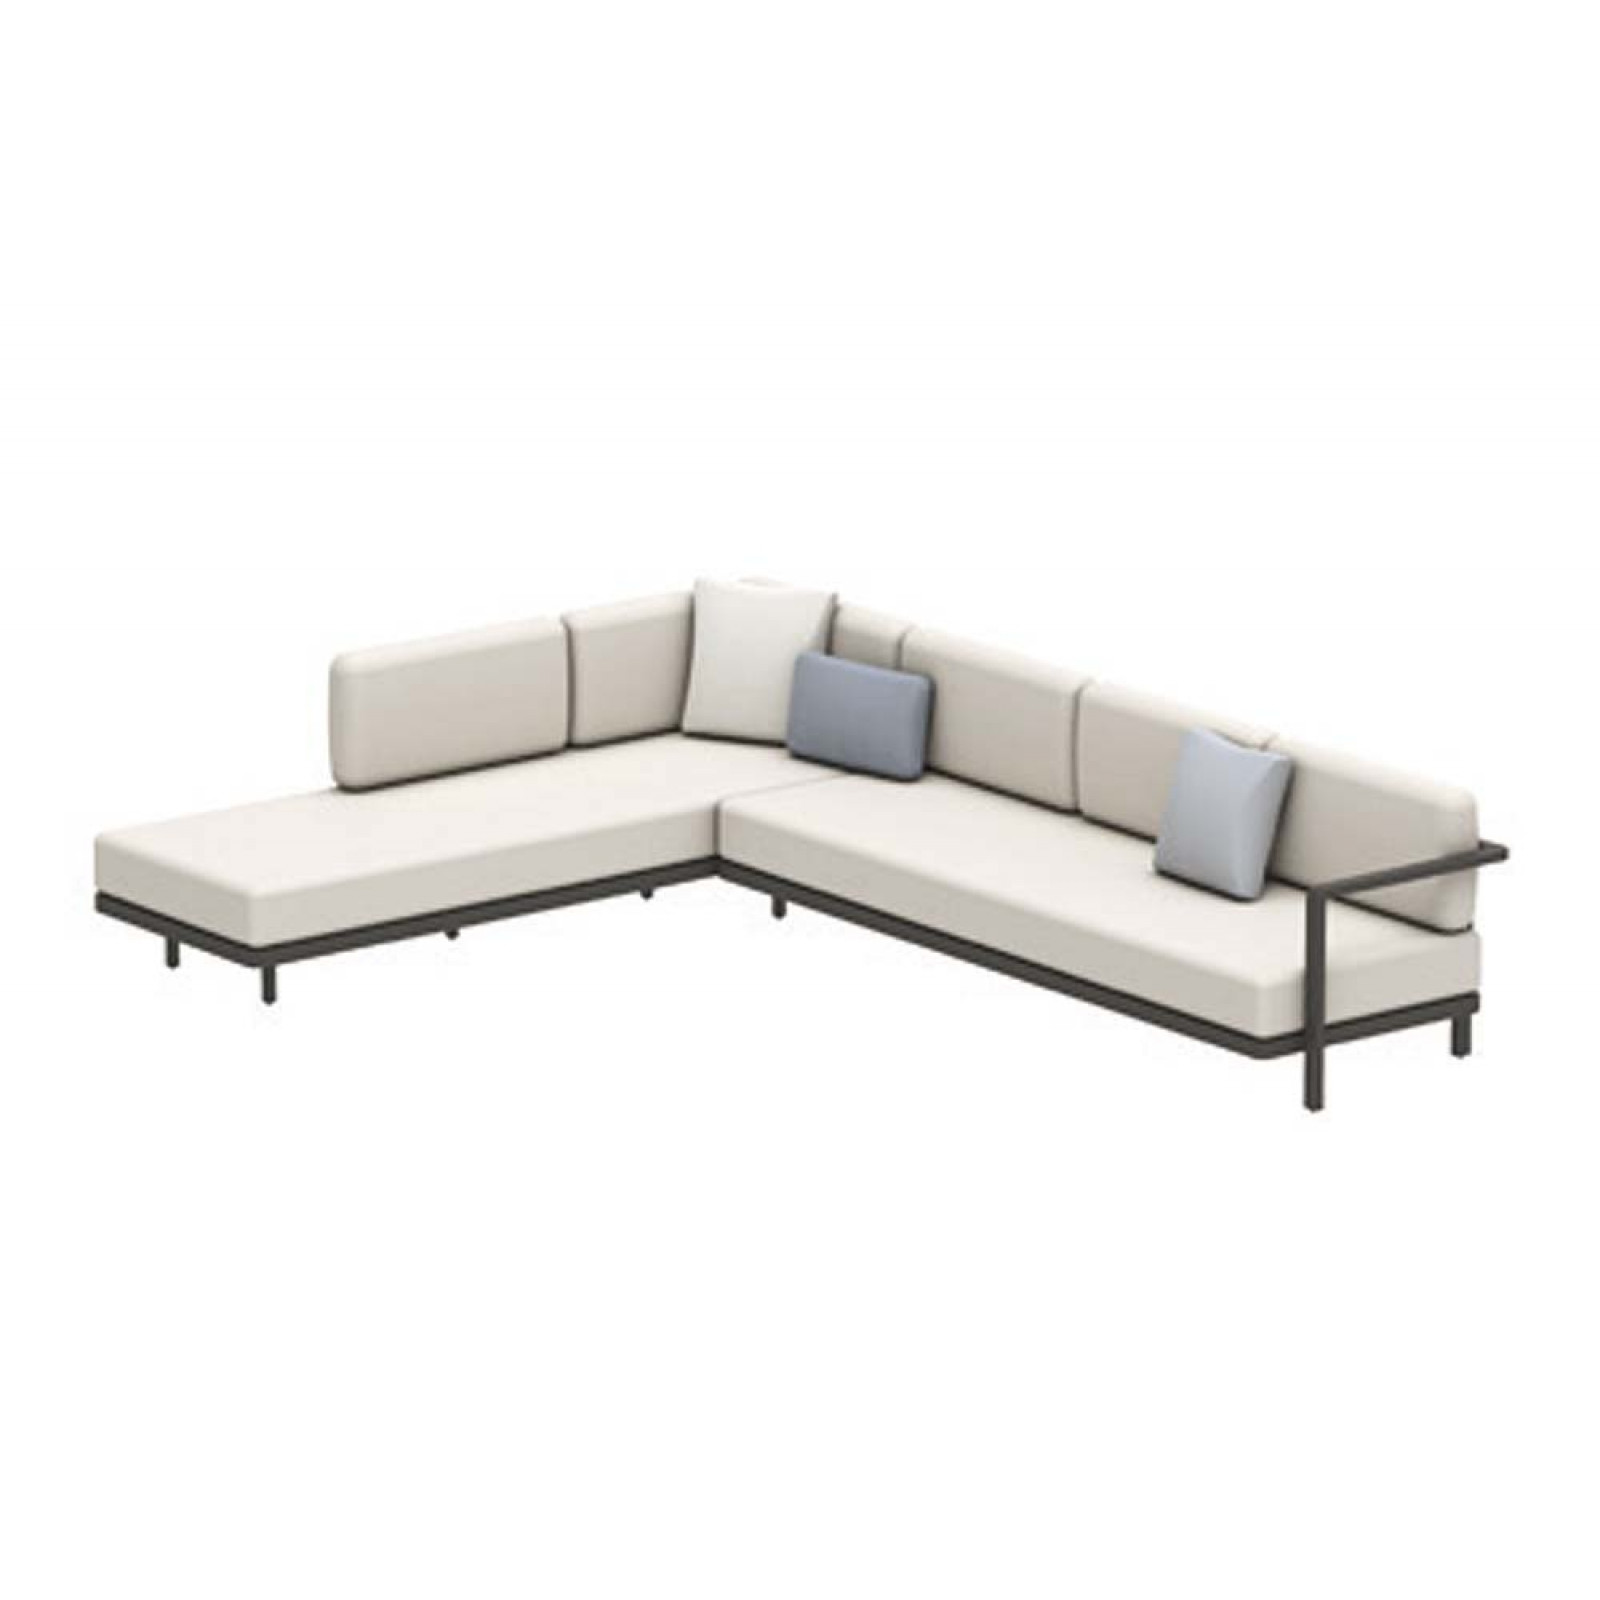 Set B • Royal Botania Red Label • Alura Lounge Ecksofa 07 • 330 × 245 rechts/links